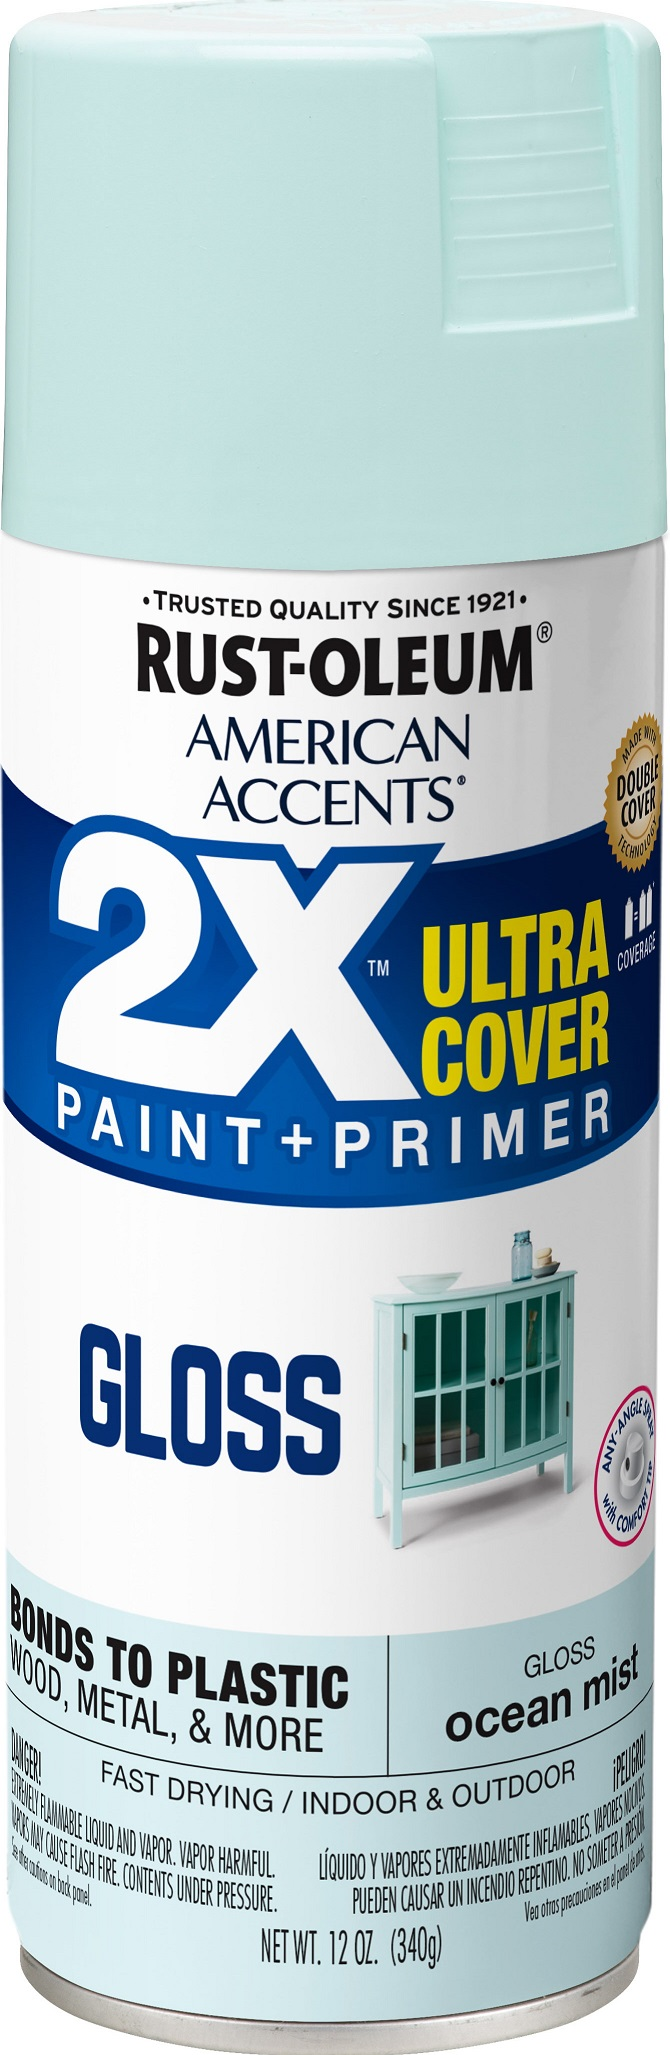 (3 Pack) Rust-Oleum American Accents Ultra Cover 2X Gloss Ocean Mist Spray Paint and Primer in 1, 12 oz